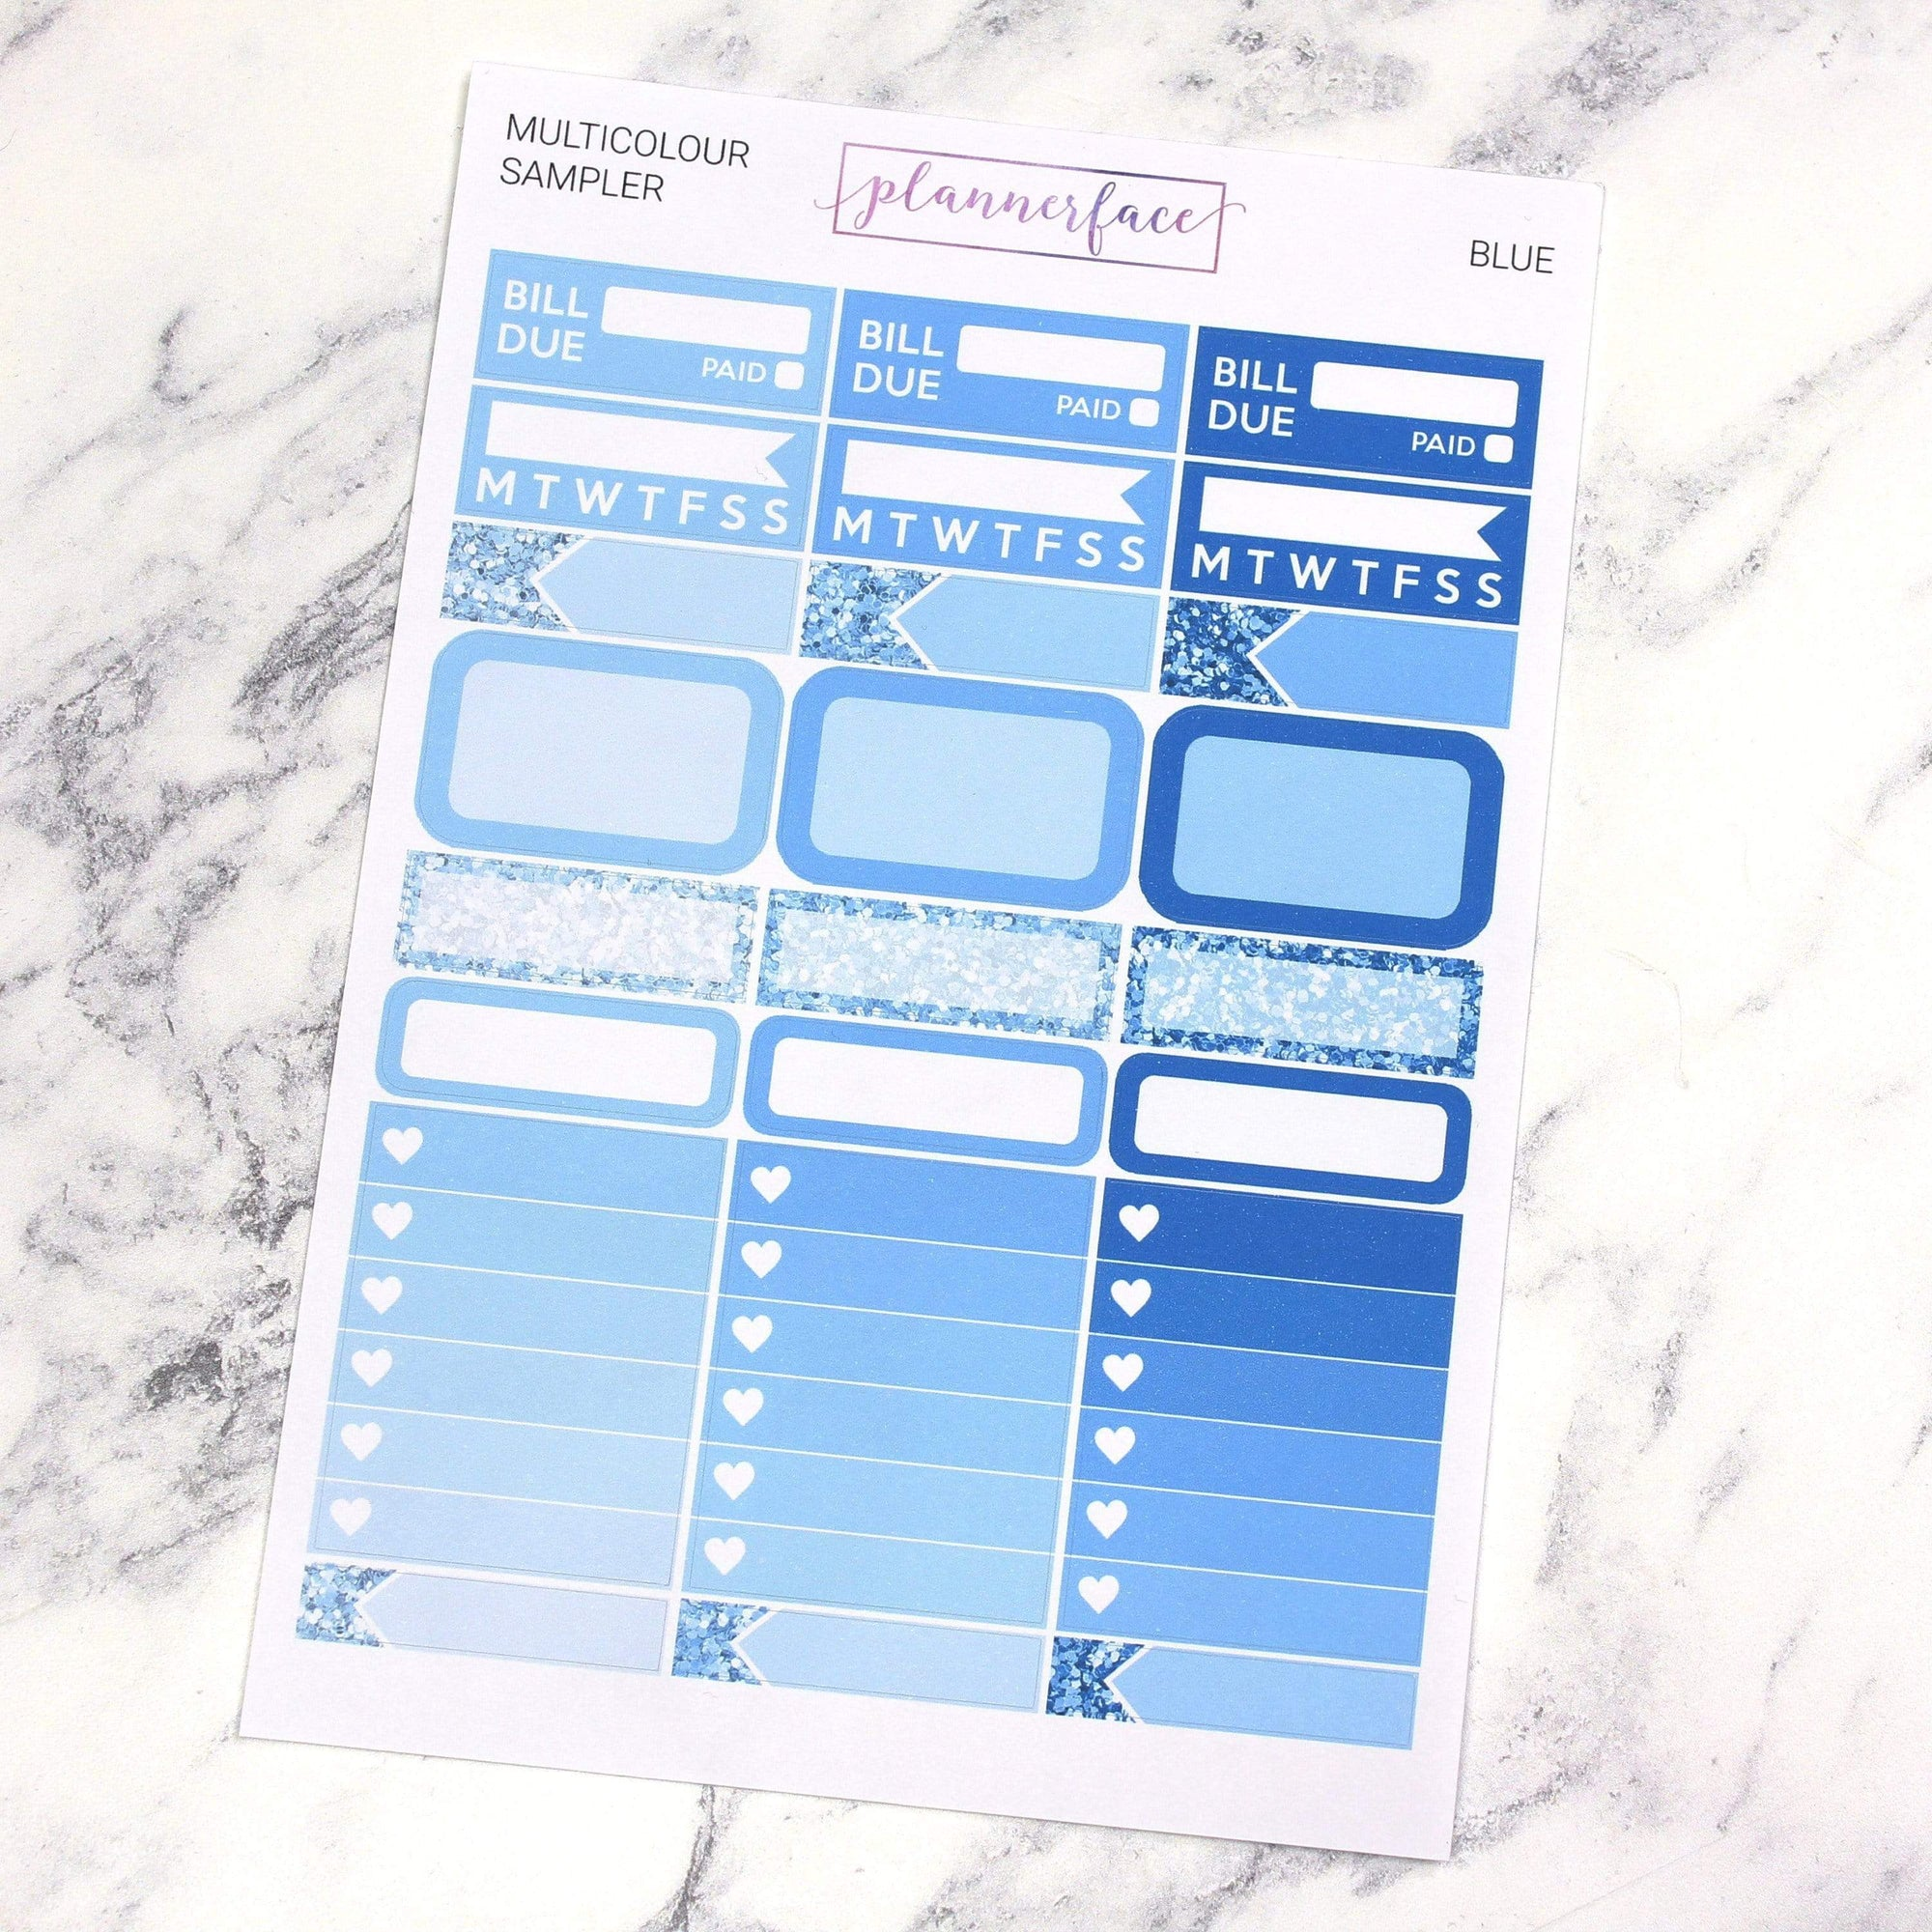 Plannerface Blue Multicolour Sampler Planner Stickers